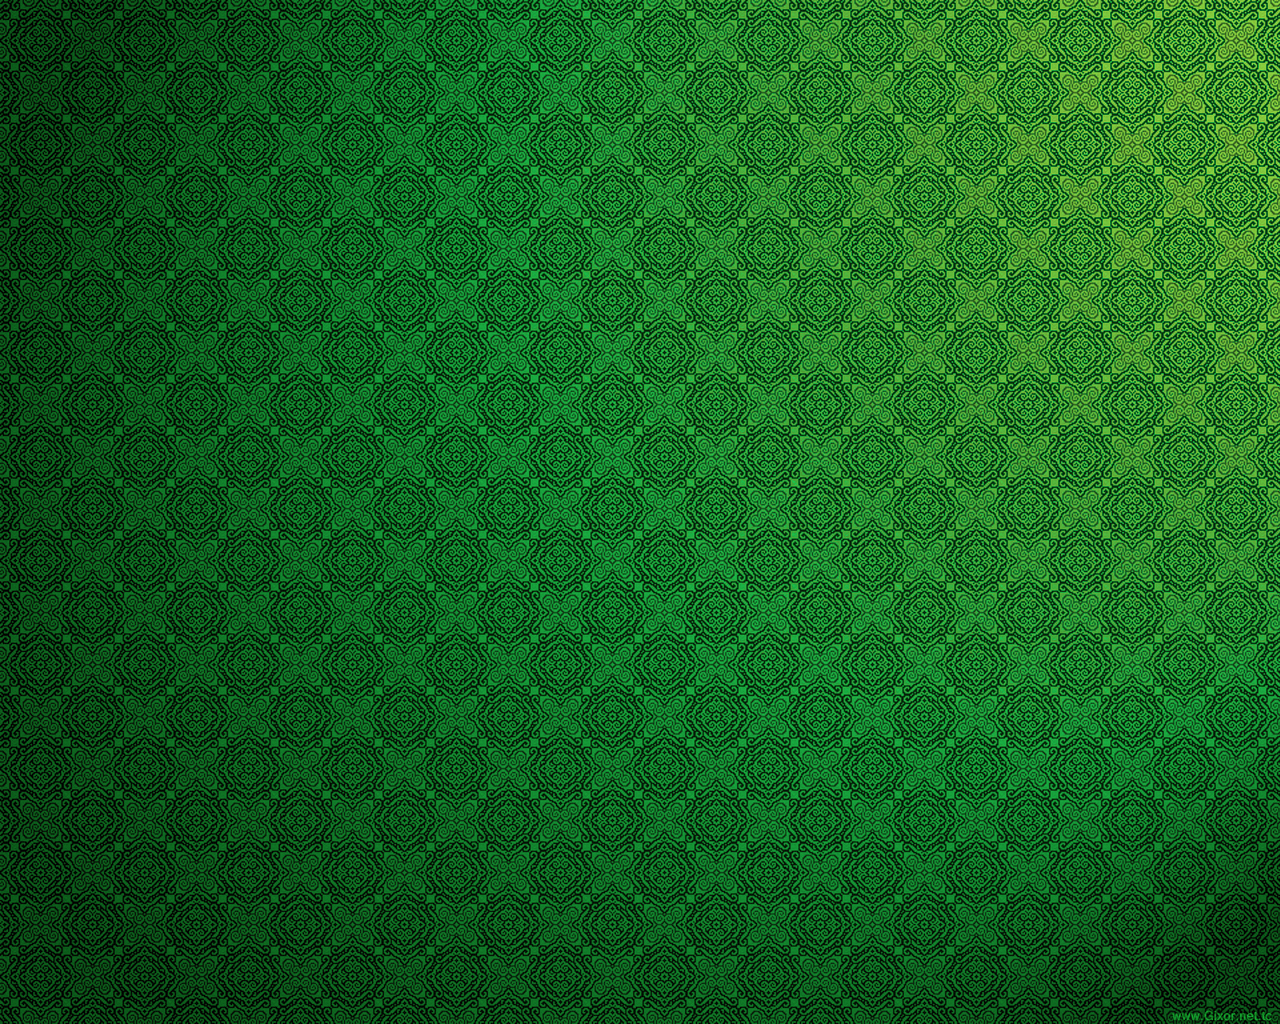 green wallpapers widescreen green nature wallpaper green wallpaper 1280x1024